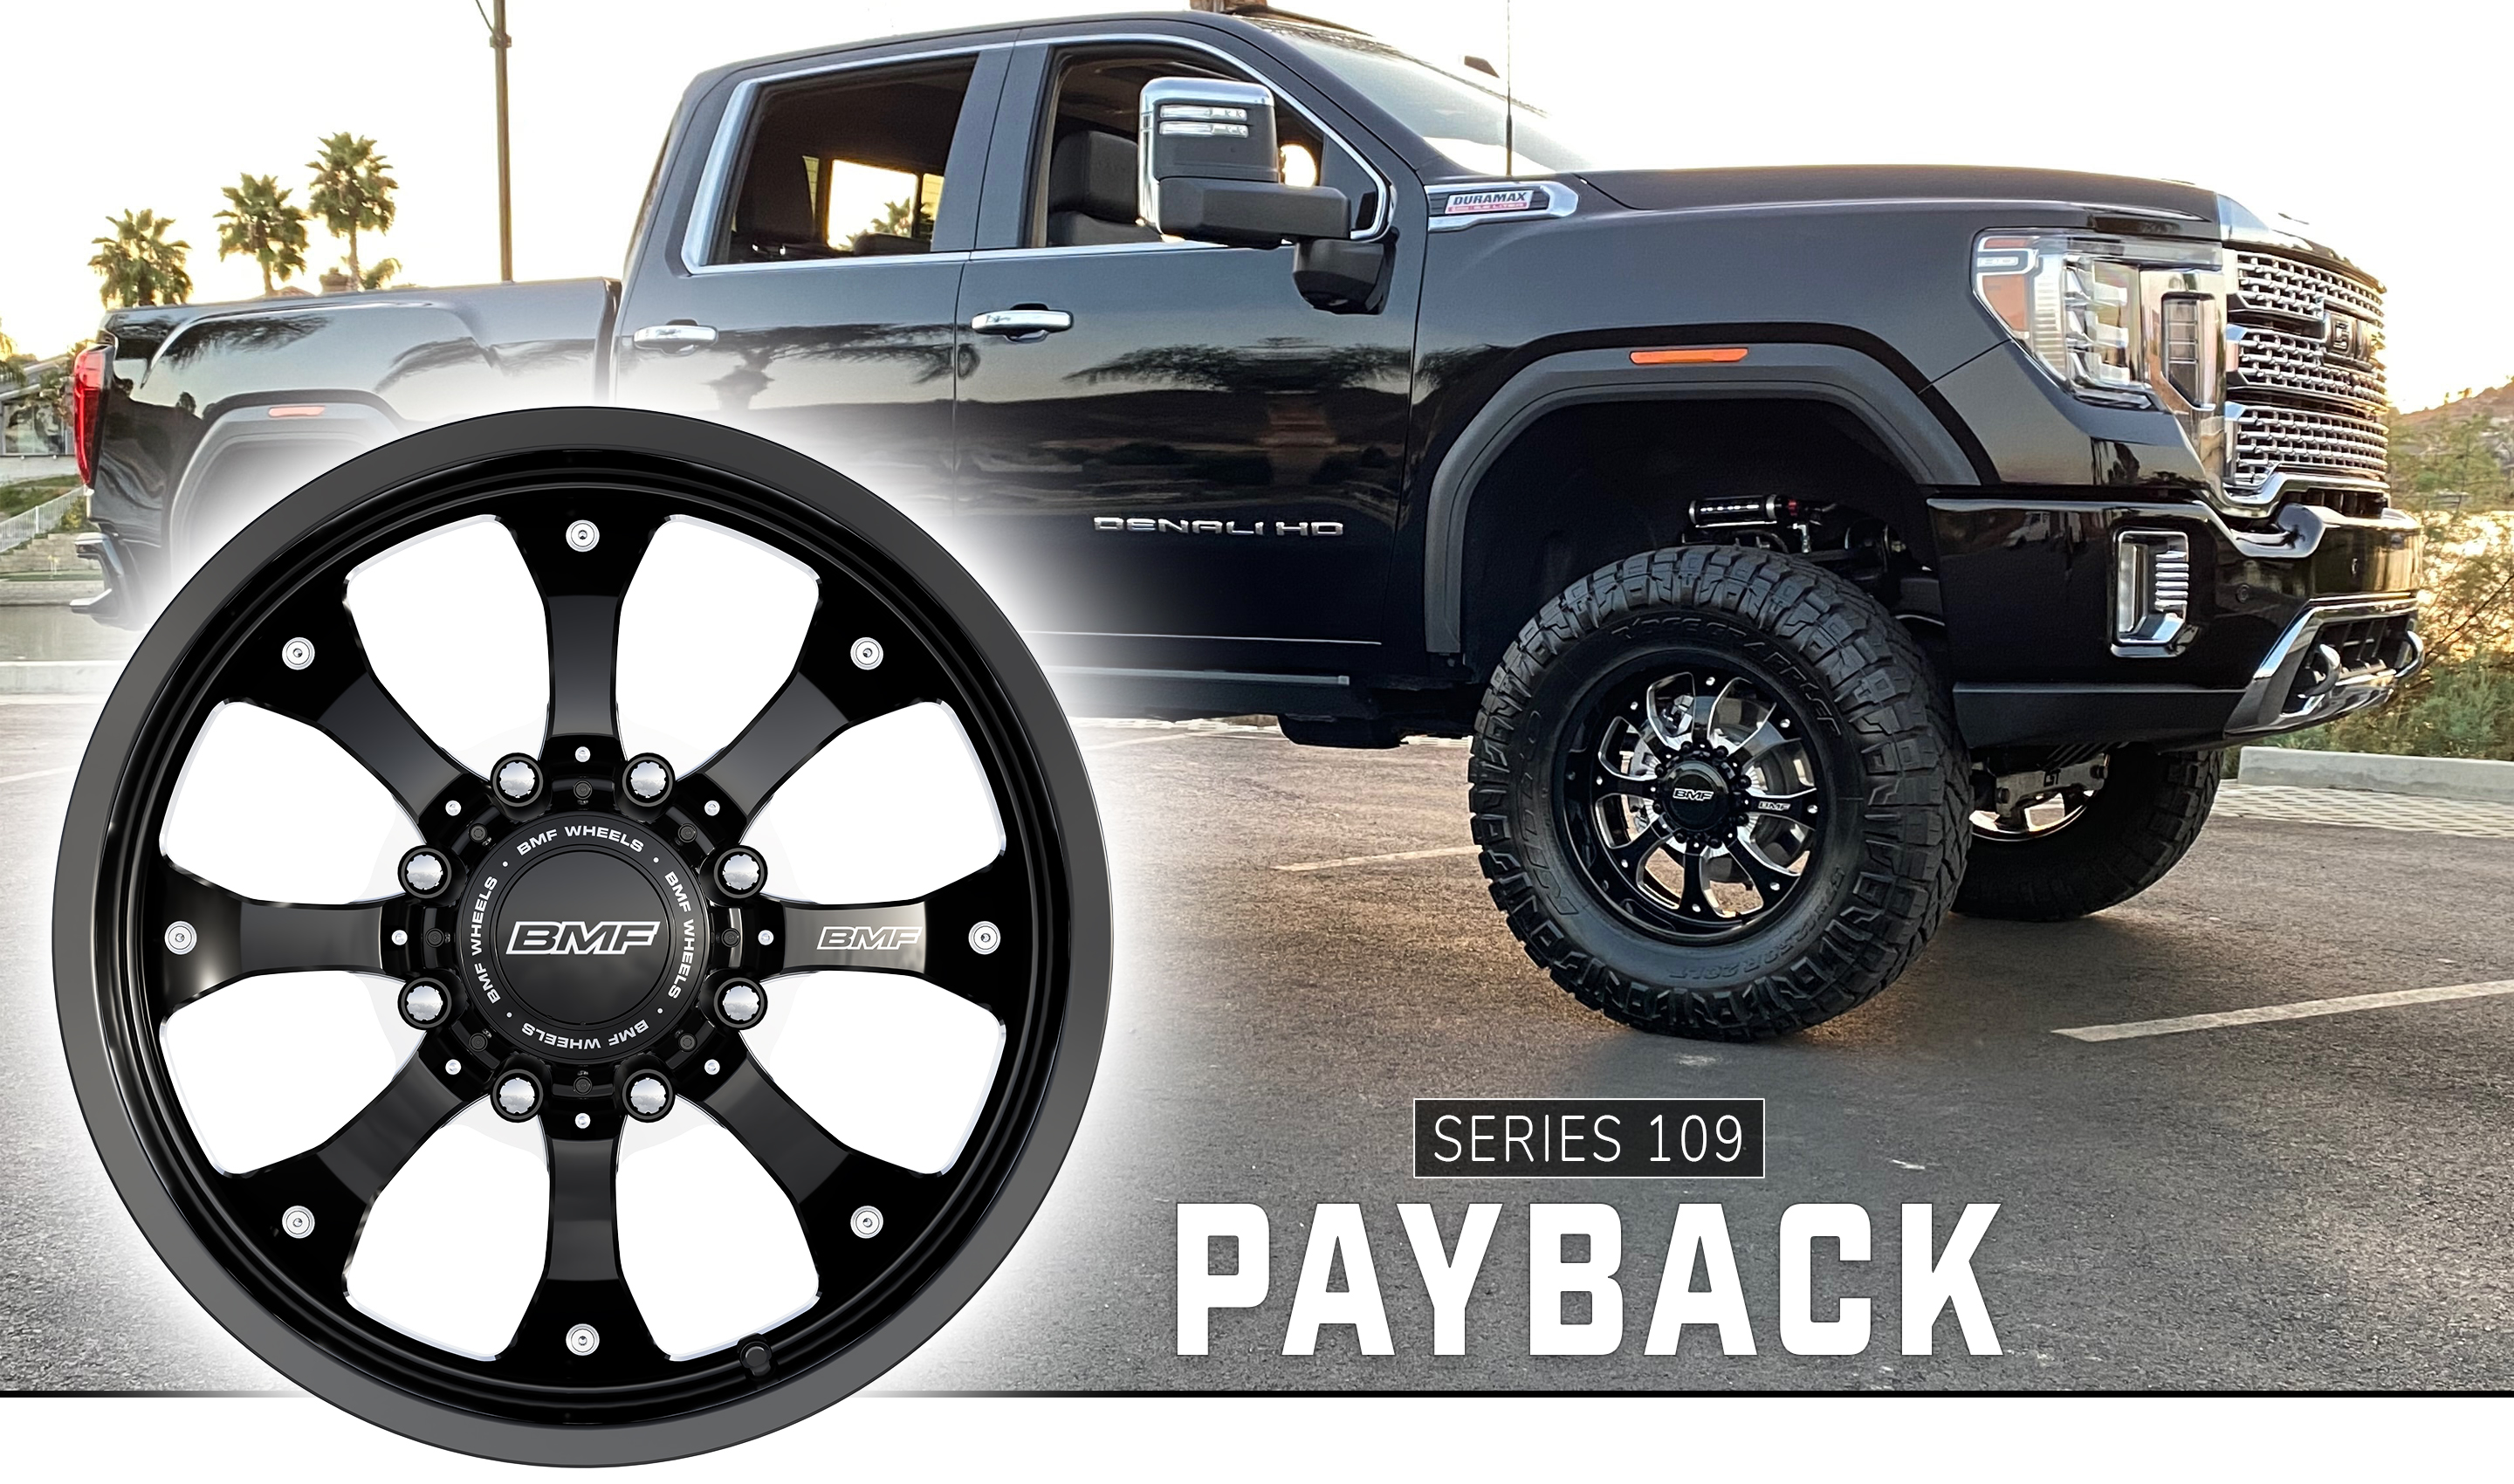 20X9 BMF Payback Truck wheels on 2020 GMC Denali with 37X12.5 Nitto Ridge Grapplers